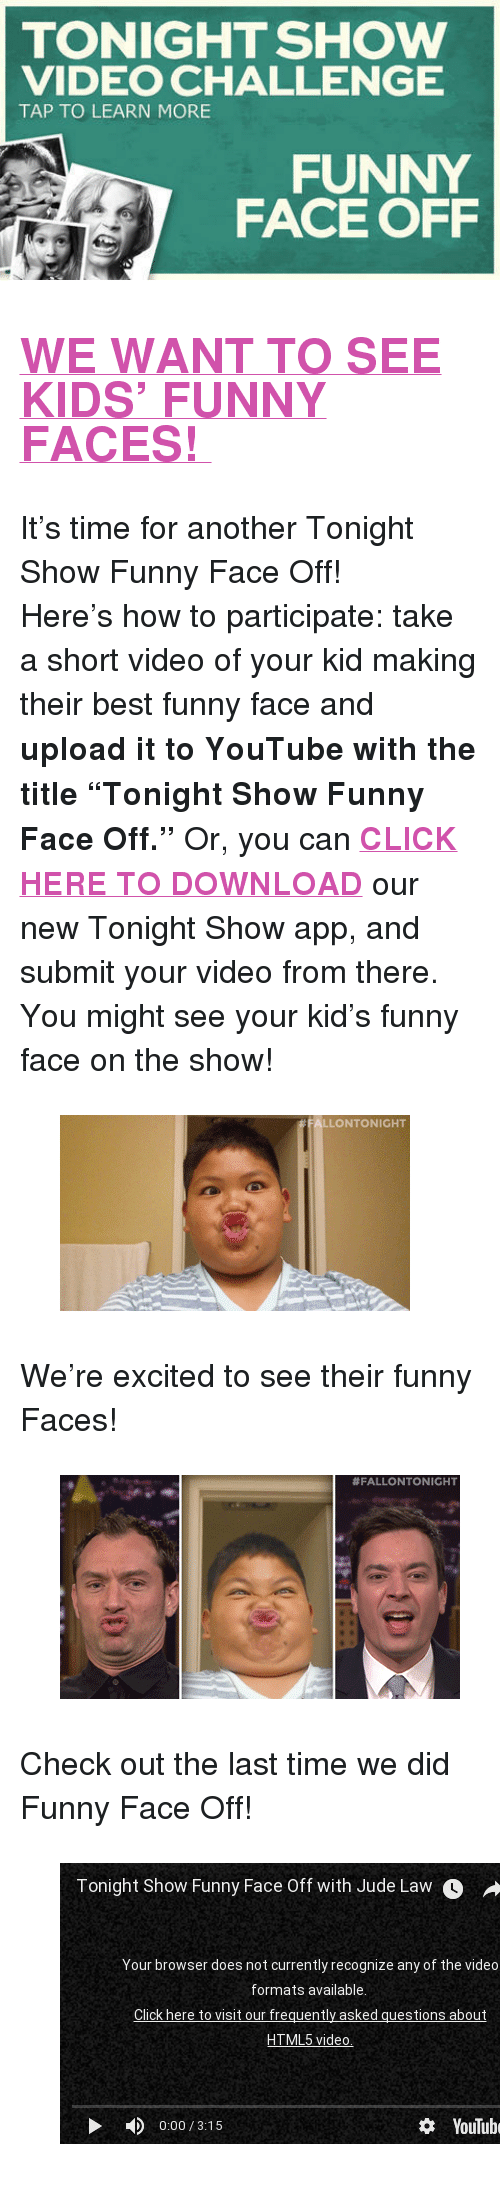 """funny face: TONIGHT SHOW  VIDEO CHALLENGE  TAP TO LEARN MORE  FUNNY  FACE OFF <h2><b><a href=""""http://www.nbc.com/the-tonight-show/blogs/3121"""" target=""""_blank"""">WE WANT TO SEE KIDS' FUNNY FACES!</a></b></h2><p>It's time for another Tonight Show Funny Face Off!</p><p>Here&rsquo;s how to participate: take a short video of your kid making their best funny face and <b>upload it to YouTube with the title """"Tonight Show Funny Face Off.""""</b> Or, you can <b><a href=""""http://www.nbc.com/the-tonight-show/blogs/1086"""" target=""""_blank"""">CLICK HERE TO DOWNLOAD</a></b> our new Tonight Show app, and submit your video from there. You might see your kid's funny face on the show!</p><figure data-orig-width=""""350"""" data-orig-height=""""196""""><img src=""""https://78.media.tumblr.com/fea73ad57acb250b718b5f3d15da086d/tumblr_inline_nlitsstbOT1qgt12i.gif"""" alt=""""image"""" data-orig-width=""""350"""" data-orig-height=""""196""""/></figure><p>We're excited to see their funny Faces!</p><figure data-orig-width=""""400"""" data-orig-height=""""224""""><img src=""""https://78.media.tumblr.com/daadc7d7137e90d2bdc7b3f60b7f0230/tumblr_inline_nlitt0yZiD1qgt12i.gif"""" alt=""""image"""" data-orig-width=""""400"""" data-orig-height=""""224""""/></figure><p>Check out the last time we did Funny Face Off!</p><figure class=""""tmblr-embed"""" data-provider=""""youtube"""" data-orig-width=""""540"""" data-orig-height=""""304"""" data-url=""""https%3A%2F%2Fwww.youtube.com%2Fwatch%3Fv%3DFlqMnDUtfOQ""""><iframe width=""""500"""" height=""""281"""" id=""""youtube_iframe"""" src=""""https://www.youtube.com/embed/FlqMnDUtfOQ?feature=oembed&amp;enablejsapi=1&amp;origin=https://safe.txmblr.com&amp;wmode=opaque"""" frameborder=""""0"""" allowfullscreen=""""""""></iframe></figure>"""